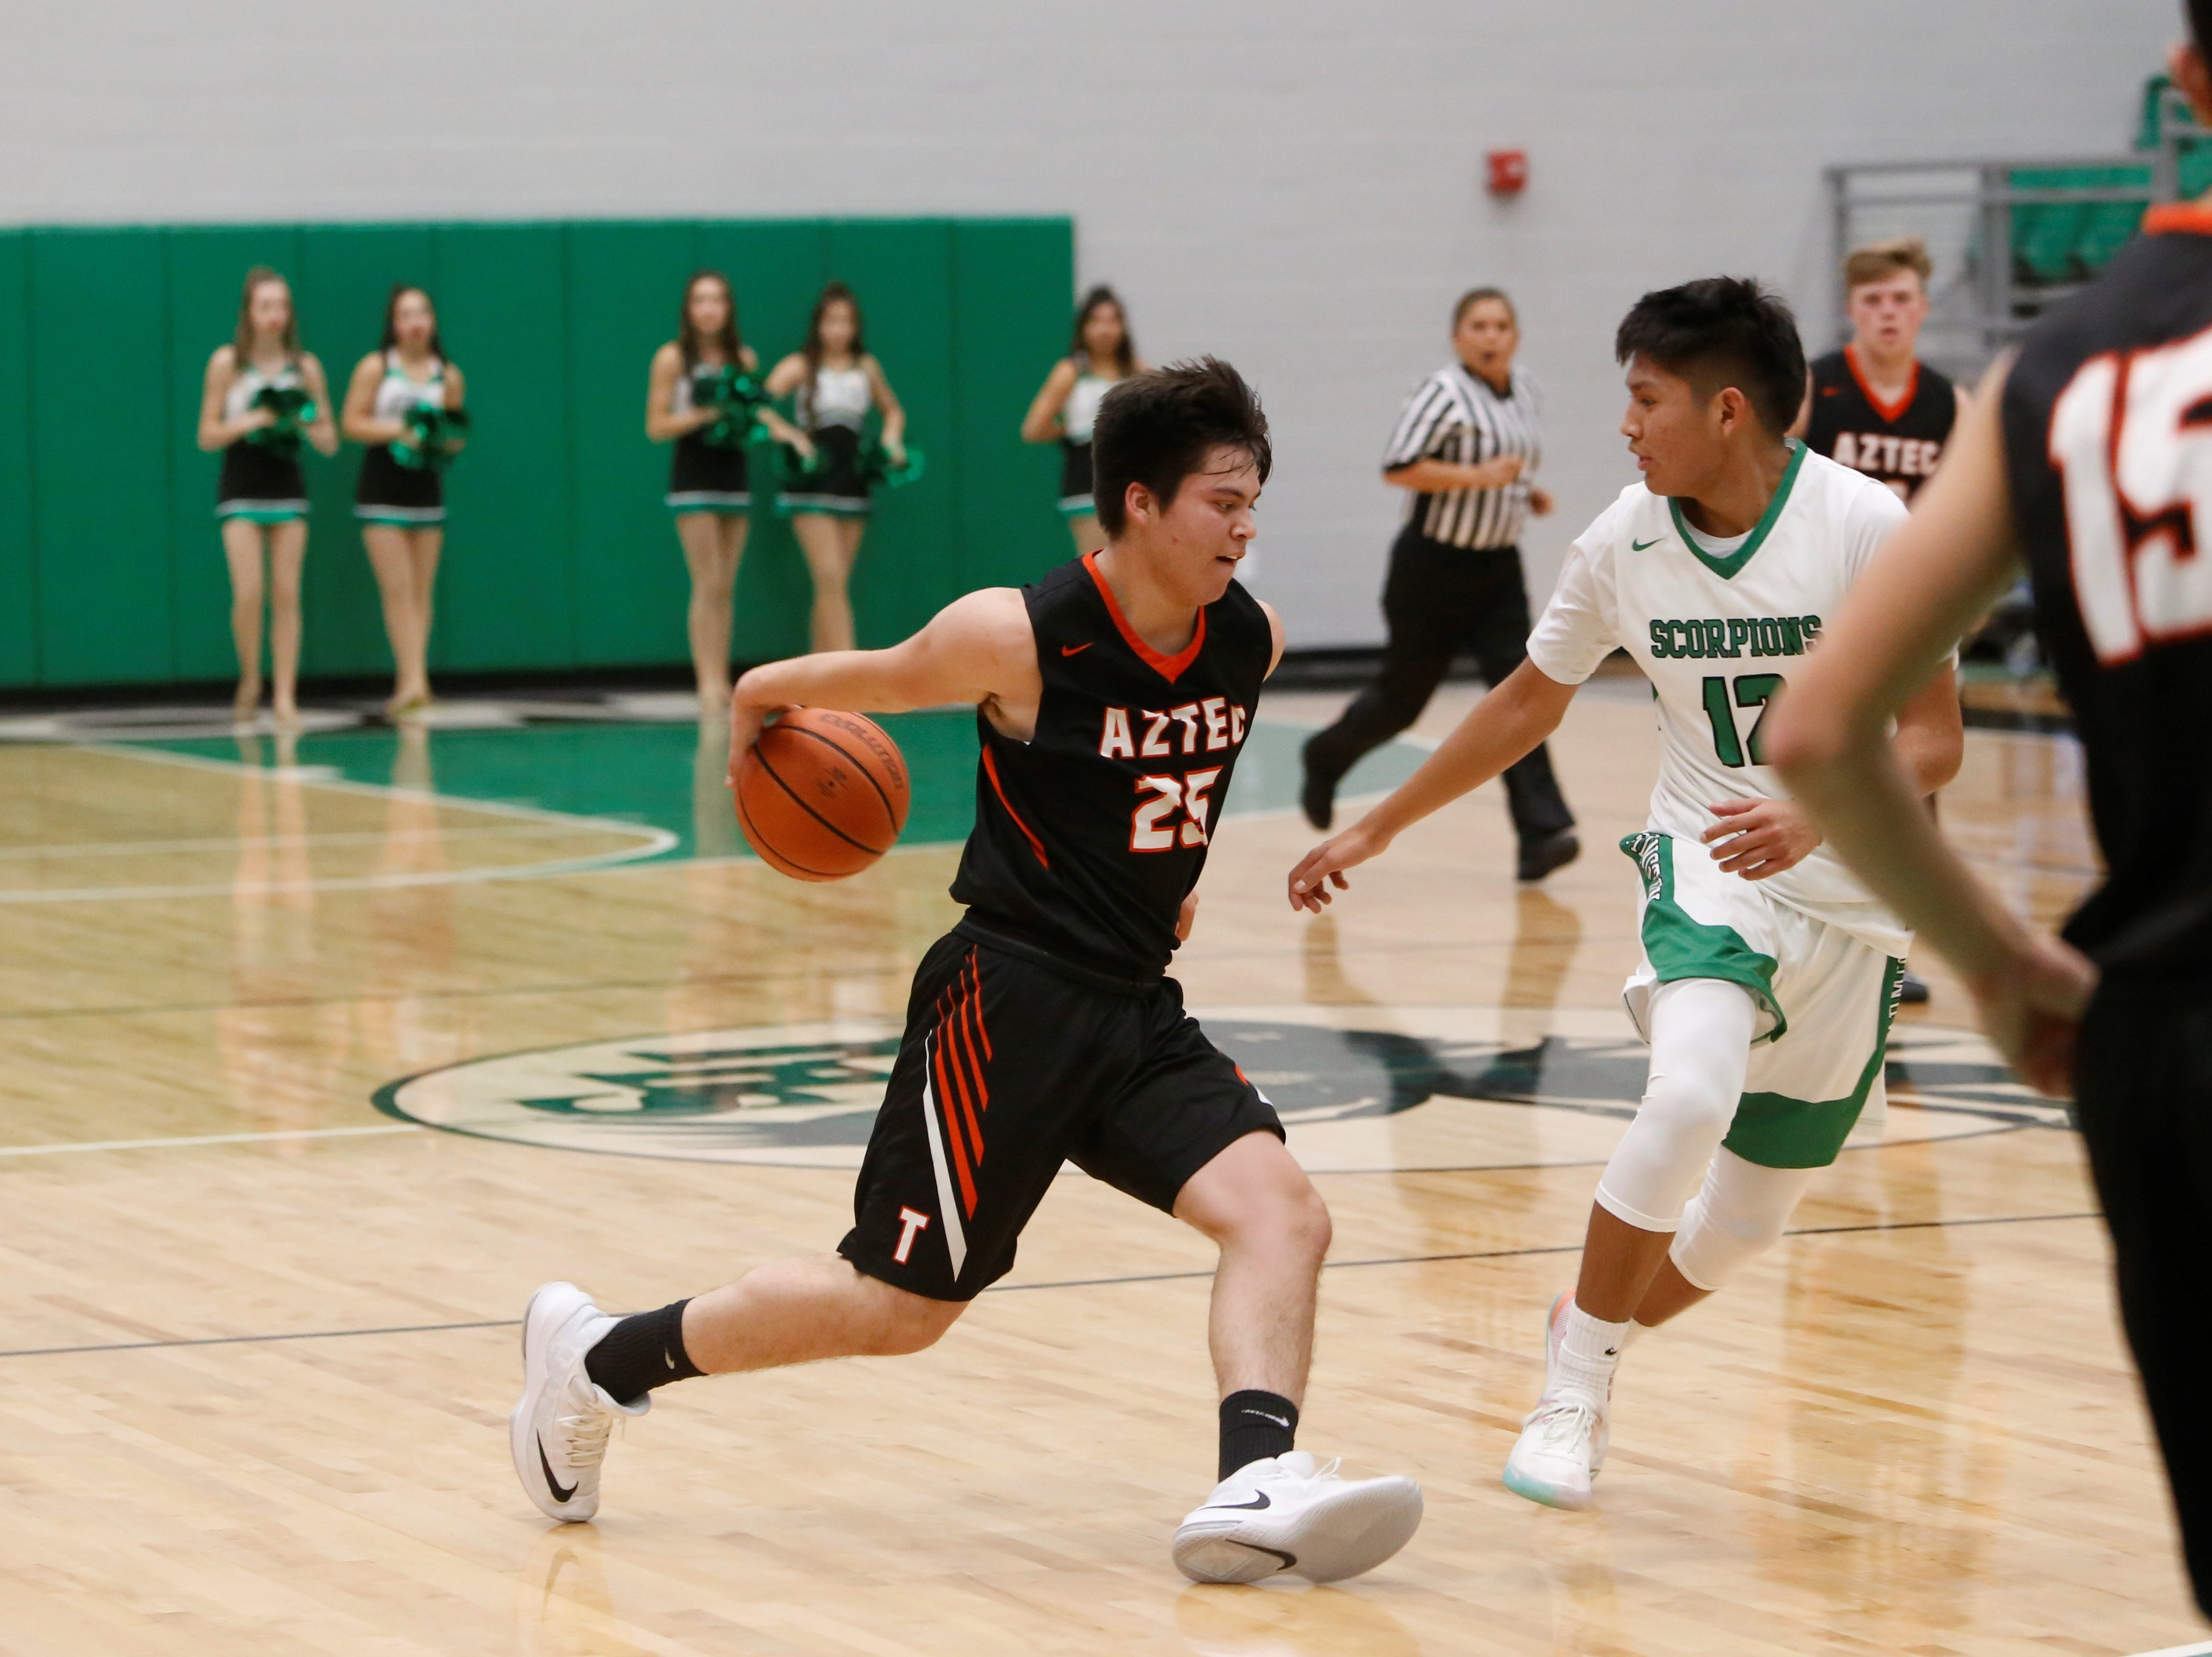 Aztec's Isaac Robeson dribbles the ball behind his back and darts to the left against Farmington's Jordan Beyale during Thursday's Marv Sanders Invitational quarterfinals at Scorpion Arena in Farmington.